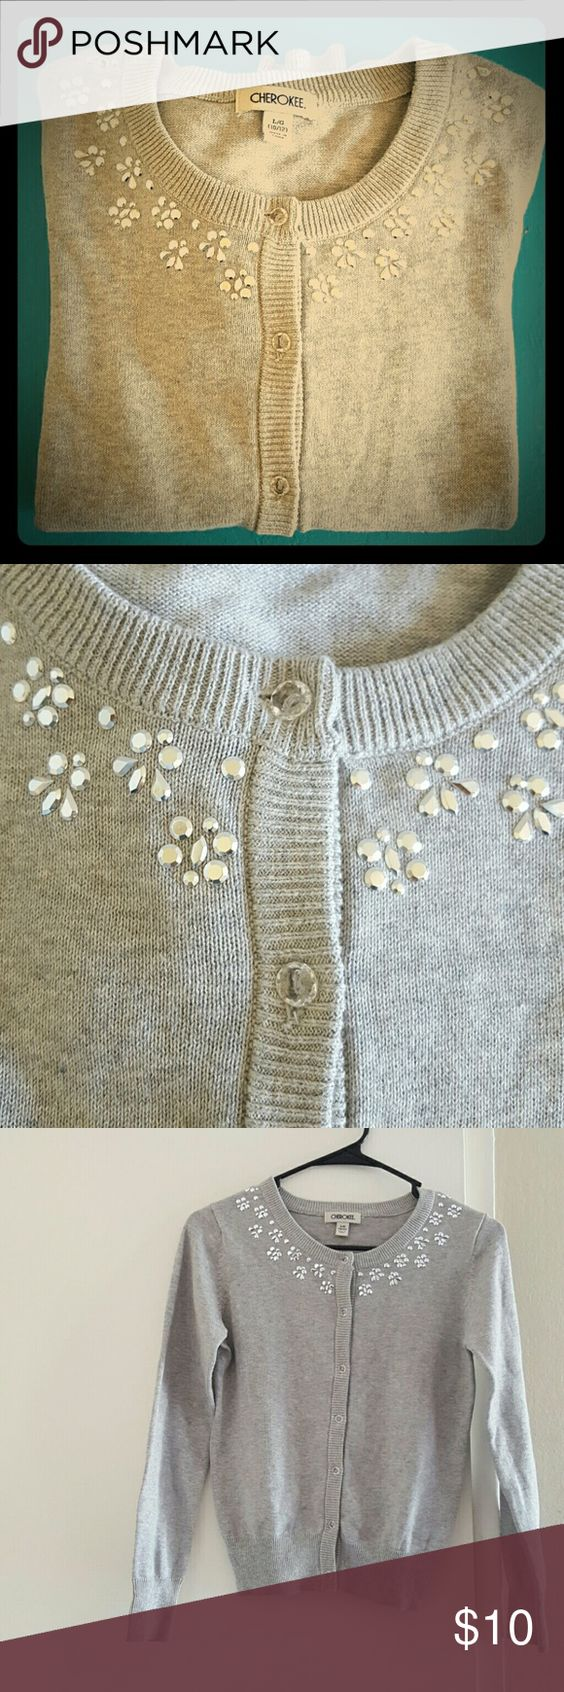 CHEROKEE GIRLS CARDIGAN NEVER WORN Pretty and classic! This cardigan has never been worn.  It's a light Heather gray with clear buttons down the front and embellished with silver flower designs across the neckline. This is a size large 10/12 purchased from Target. Cherokee Shirts & Tops Sweaters